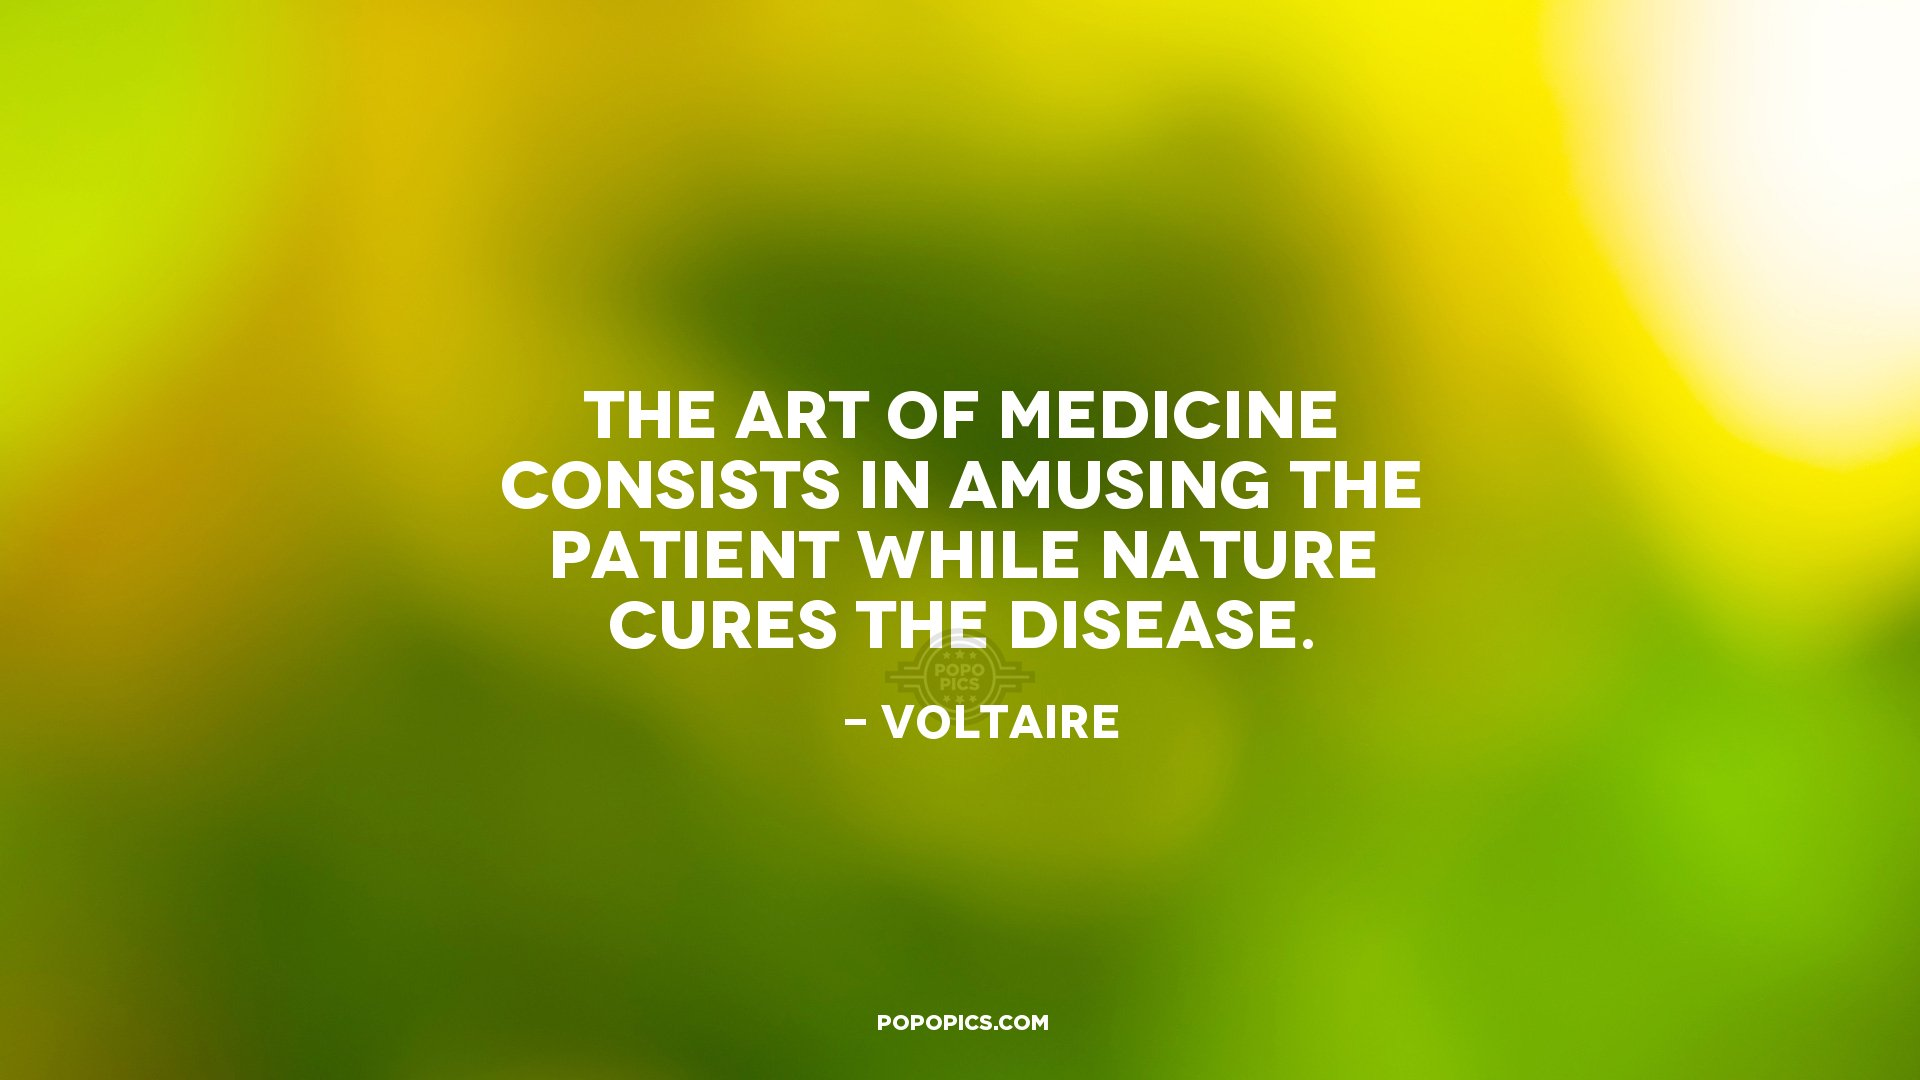 Quotes Voltaire The Art Of Medicine Consists In Amusing The Quotes.